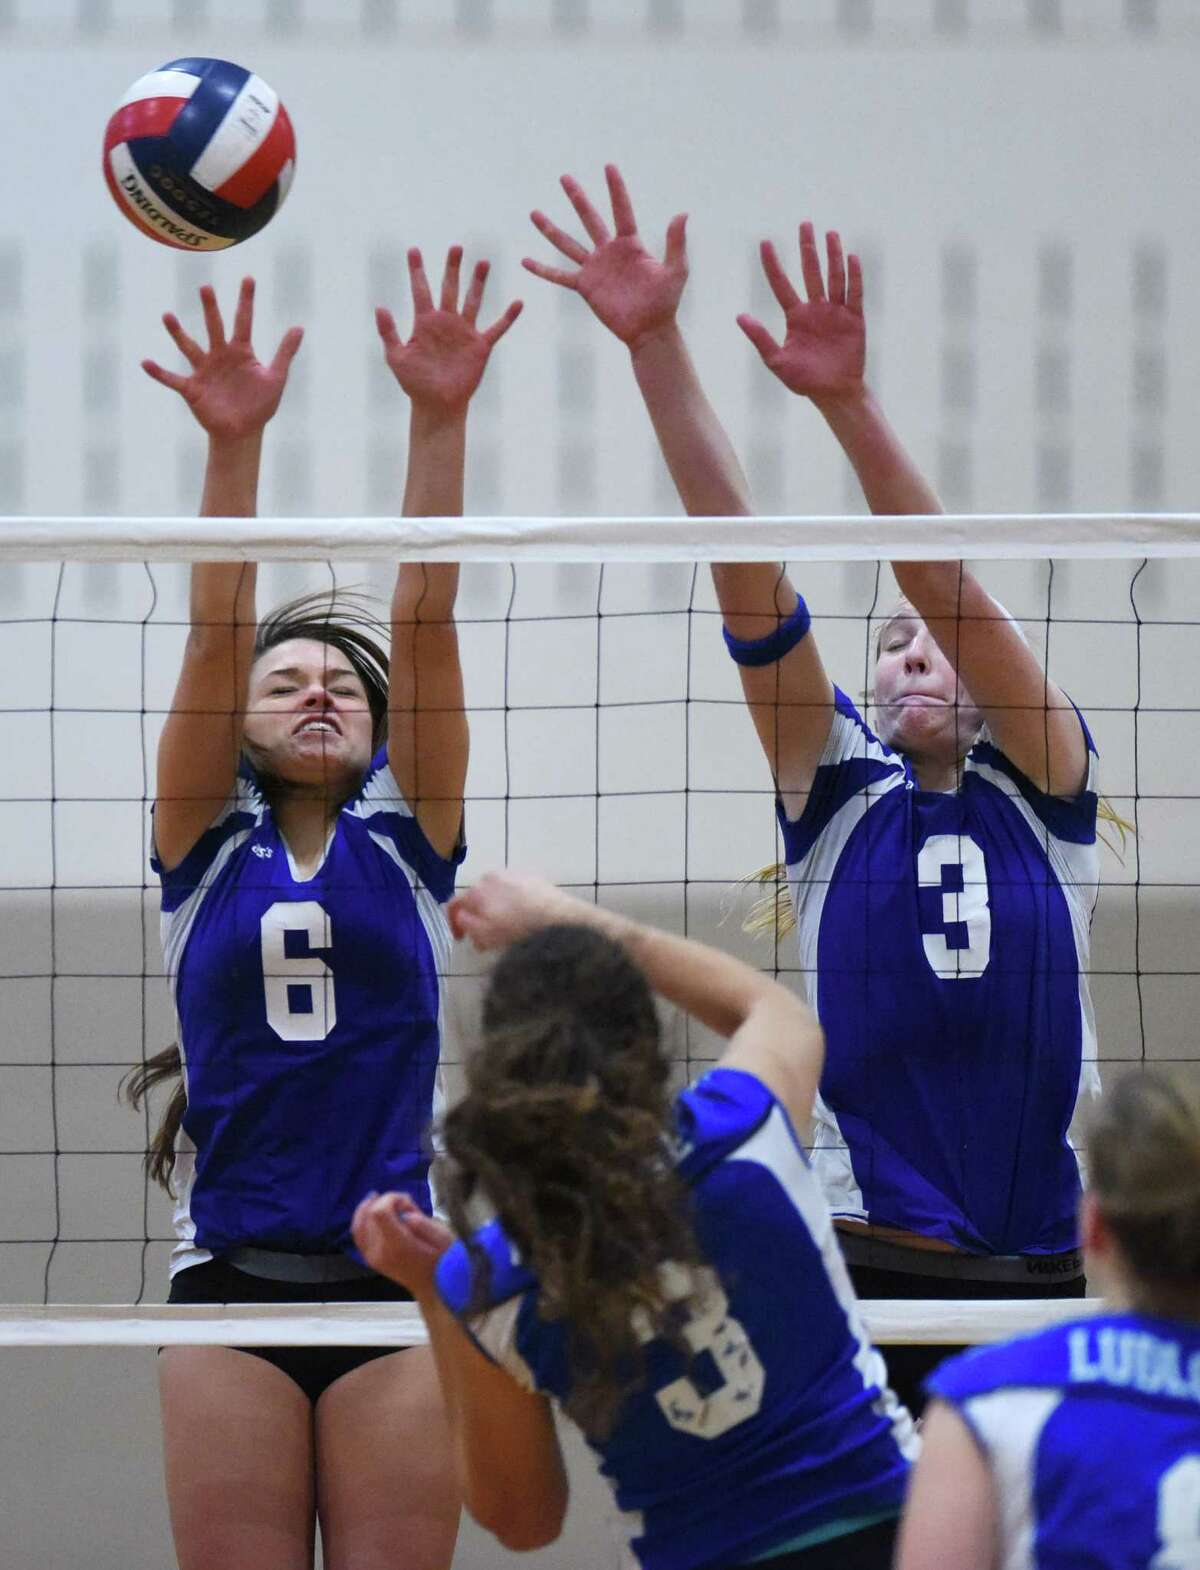 Darien's Samantha Huff, left, and Isabelle Taylor go up for a block in Darien's 3-1 (23-25, 25-16, 25-12, 25-16) win over Fairfield Ludlowe in the CIAC Class LL girls volleyball semifinal game at Shelton Intermediate School in Shelton, Conn. Thursday, Nov. 13, 2014.